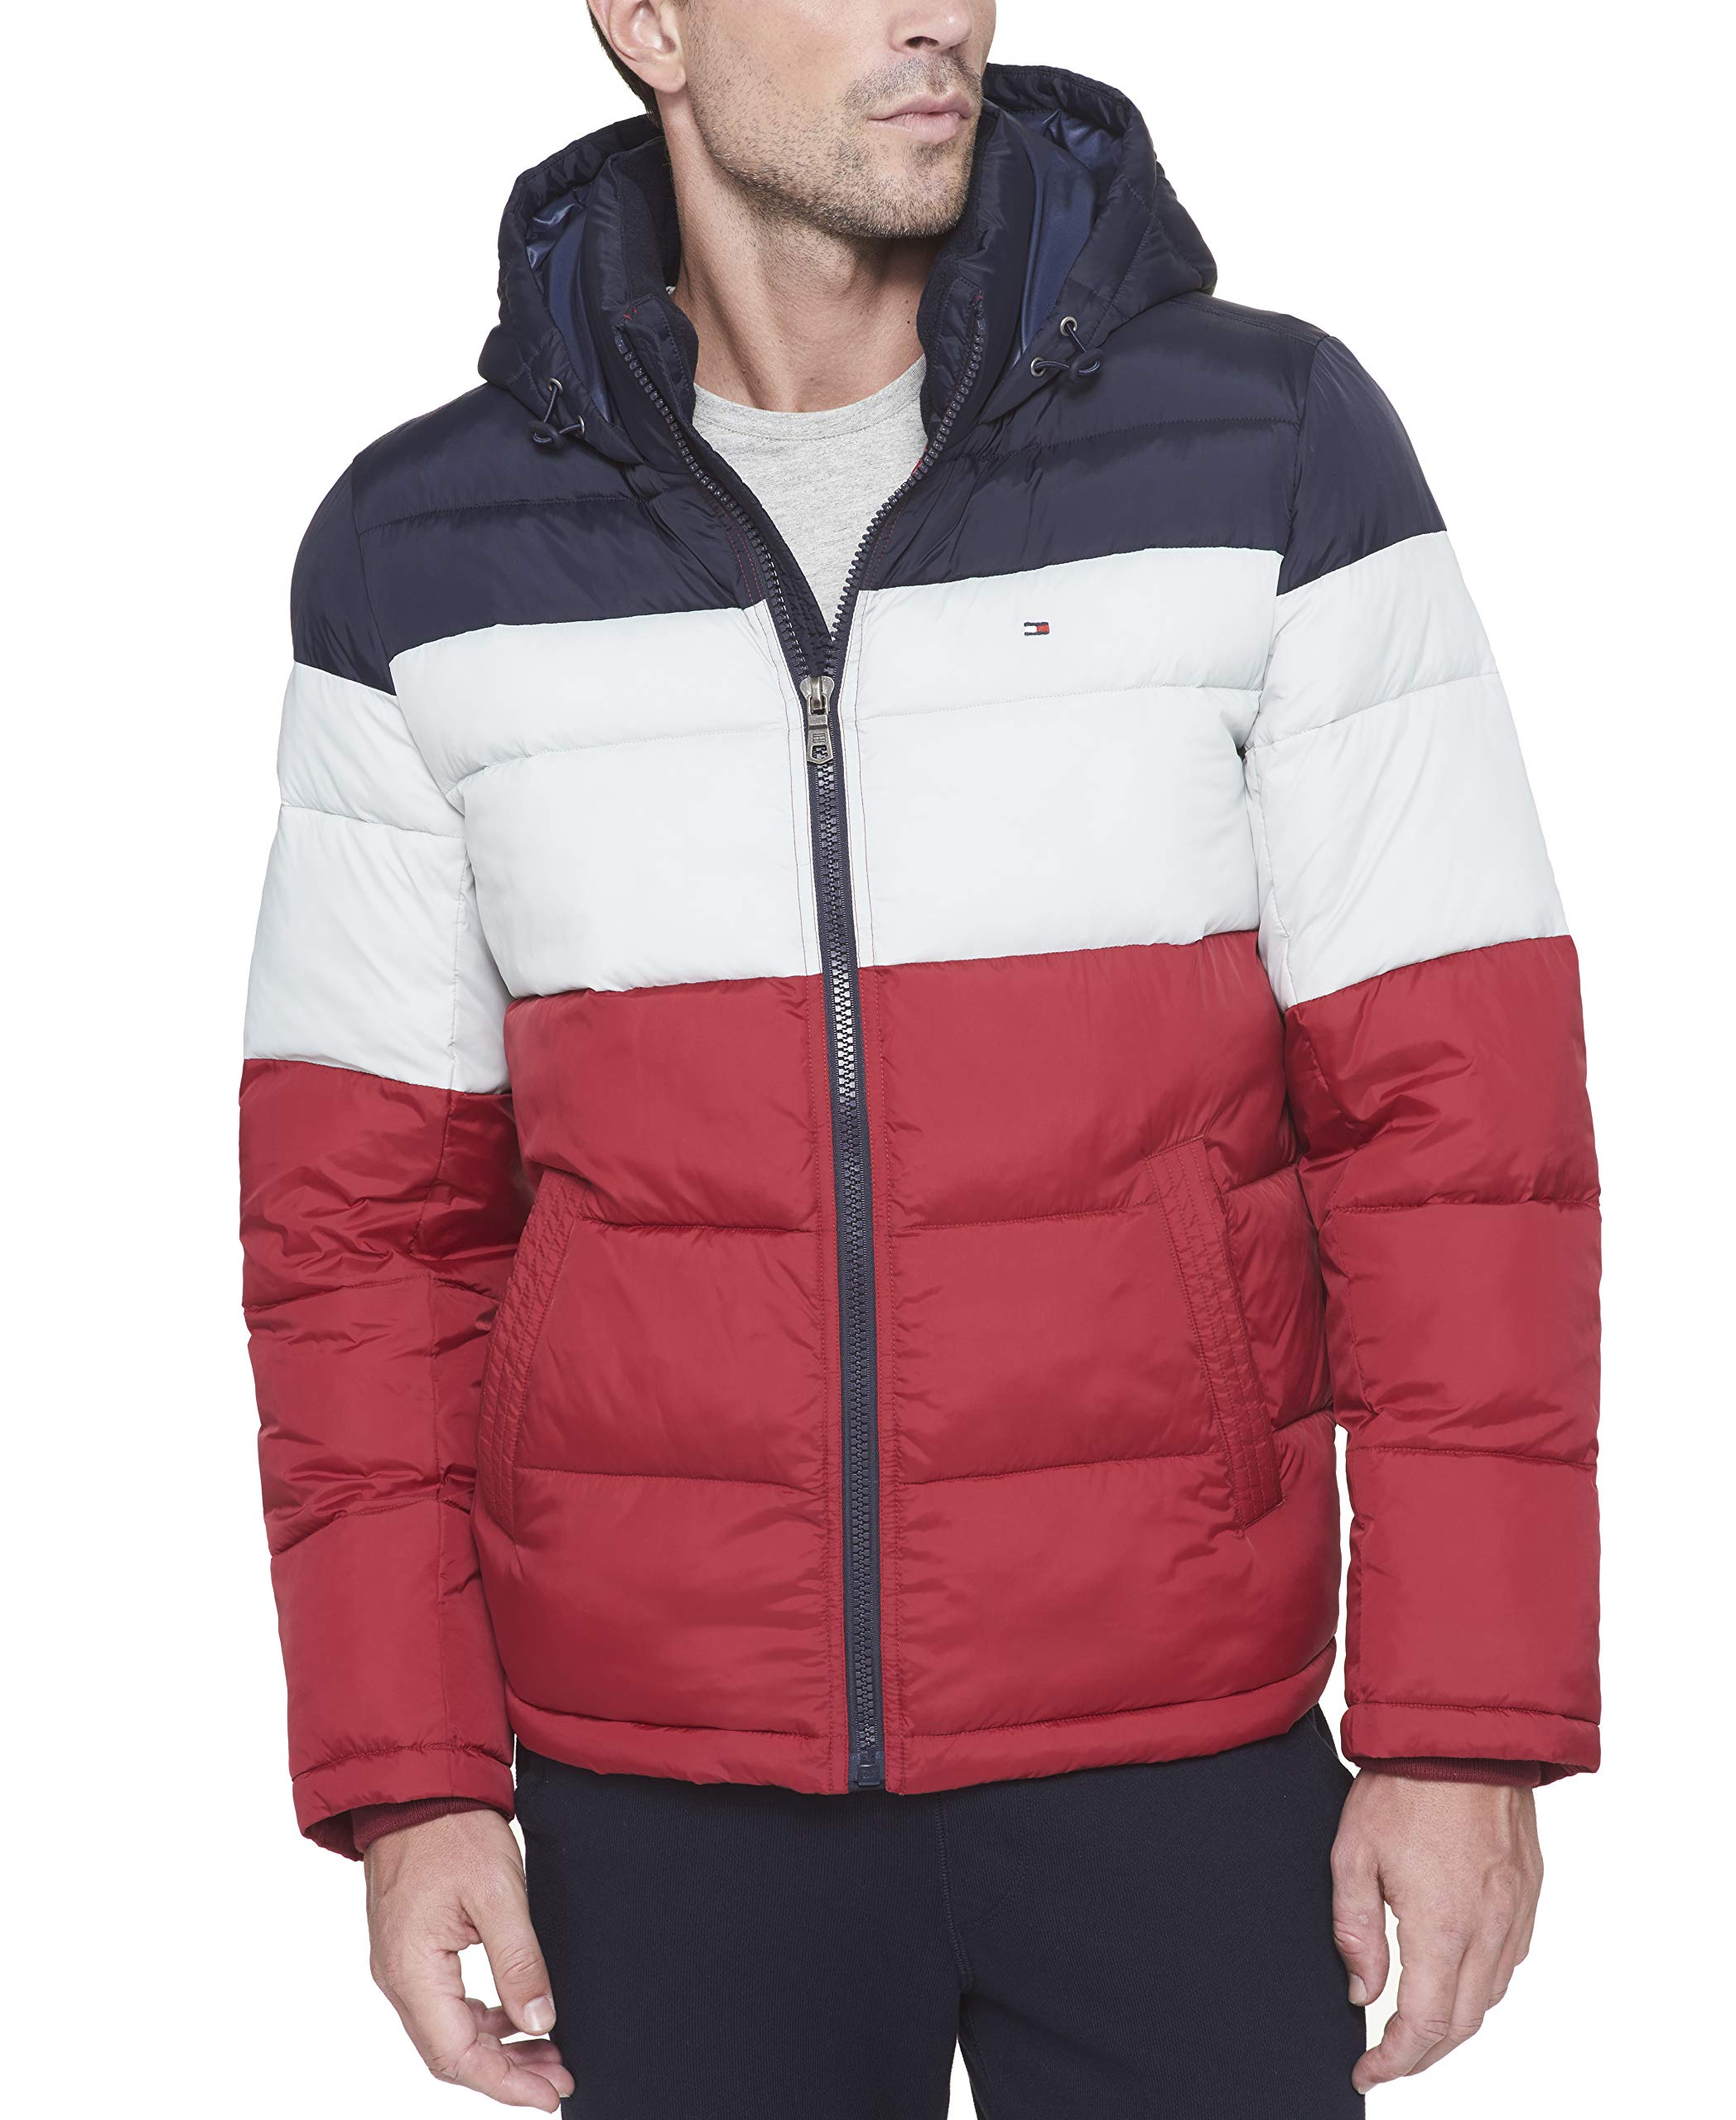 Tommy Hilfiger Men's Classic Hooded Puffer Jacket (Regular and Big & Tall Sizes), Midnight/White/red, Small by Tommy Hilfiger